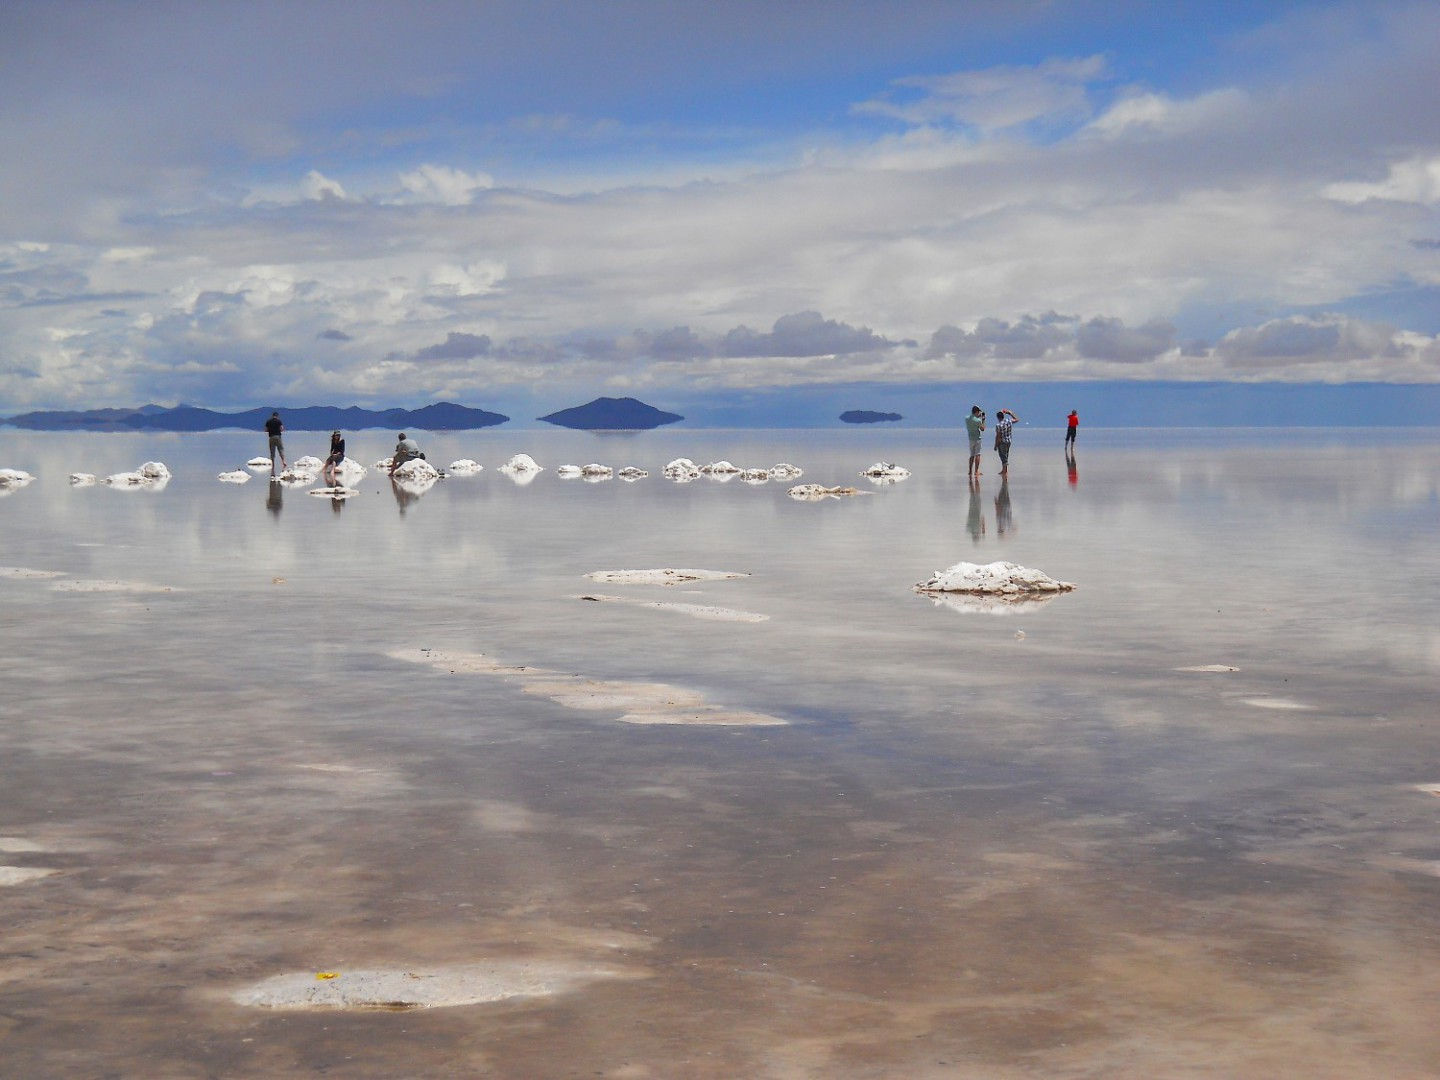 FACTS ABOUT INCREDIBLE NATURAL ANOMALIES